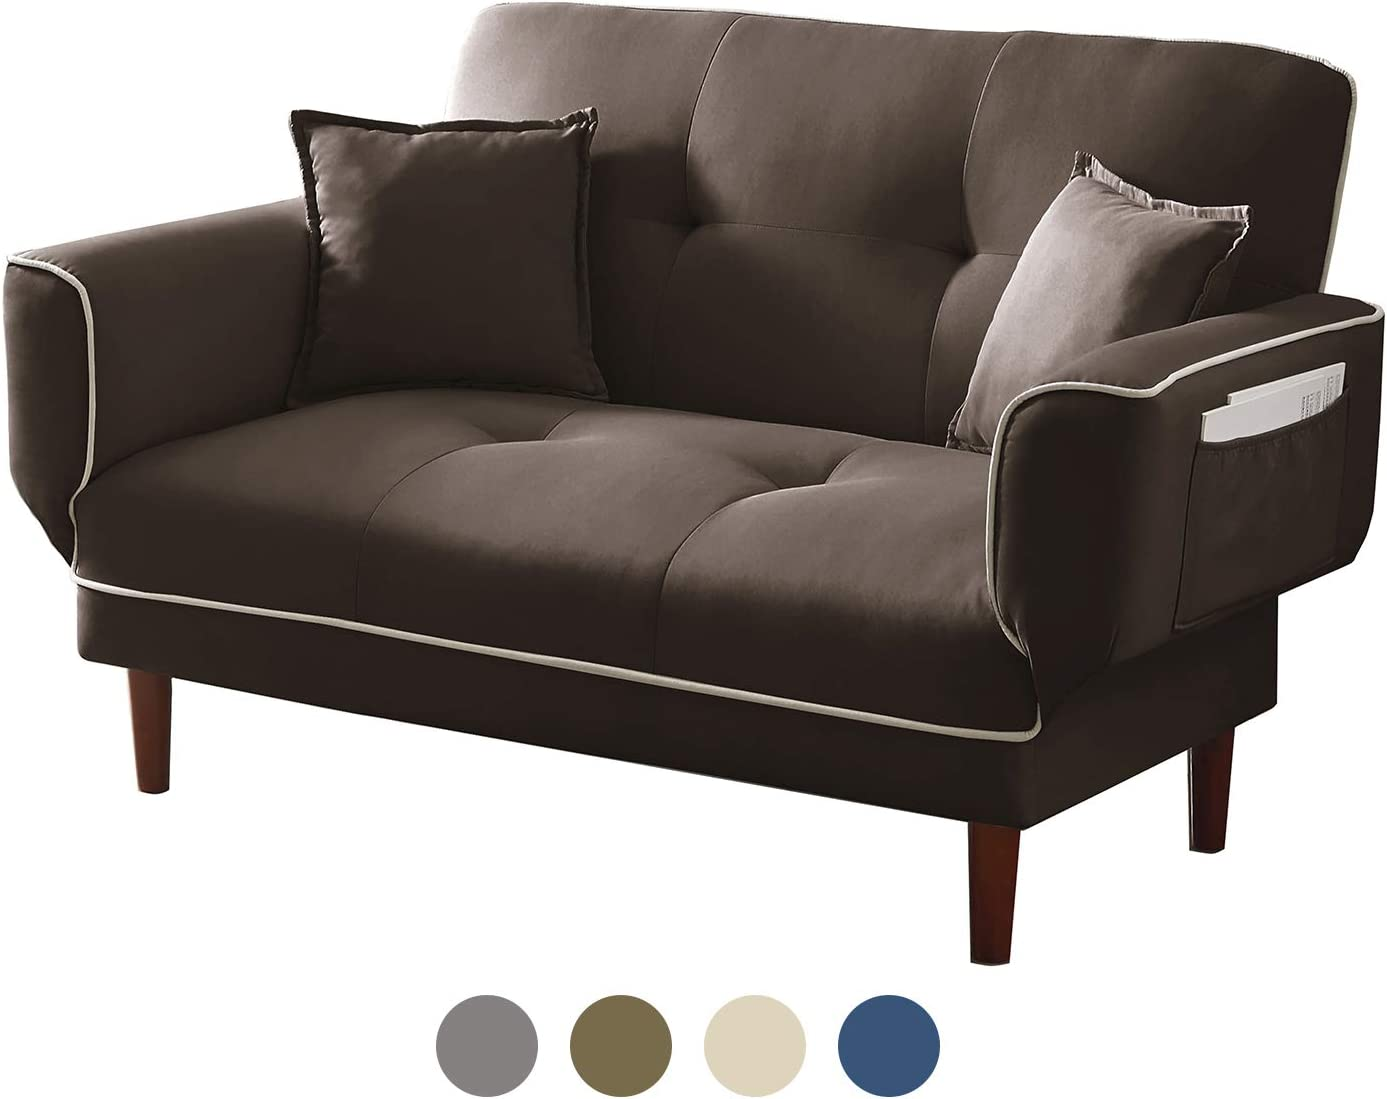 Amazon Com Freesnooze 56 Loveseat And Mini Chaise Sofa Bed With 2 Pillows For Living Room And Bedroom Brown Kitchen Dining